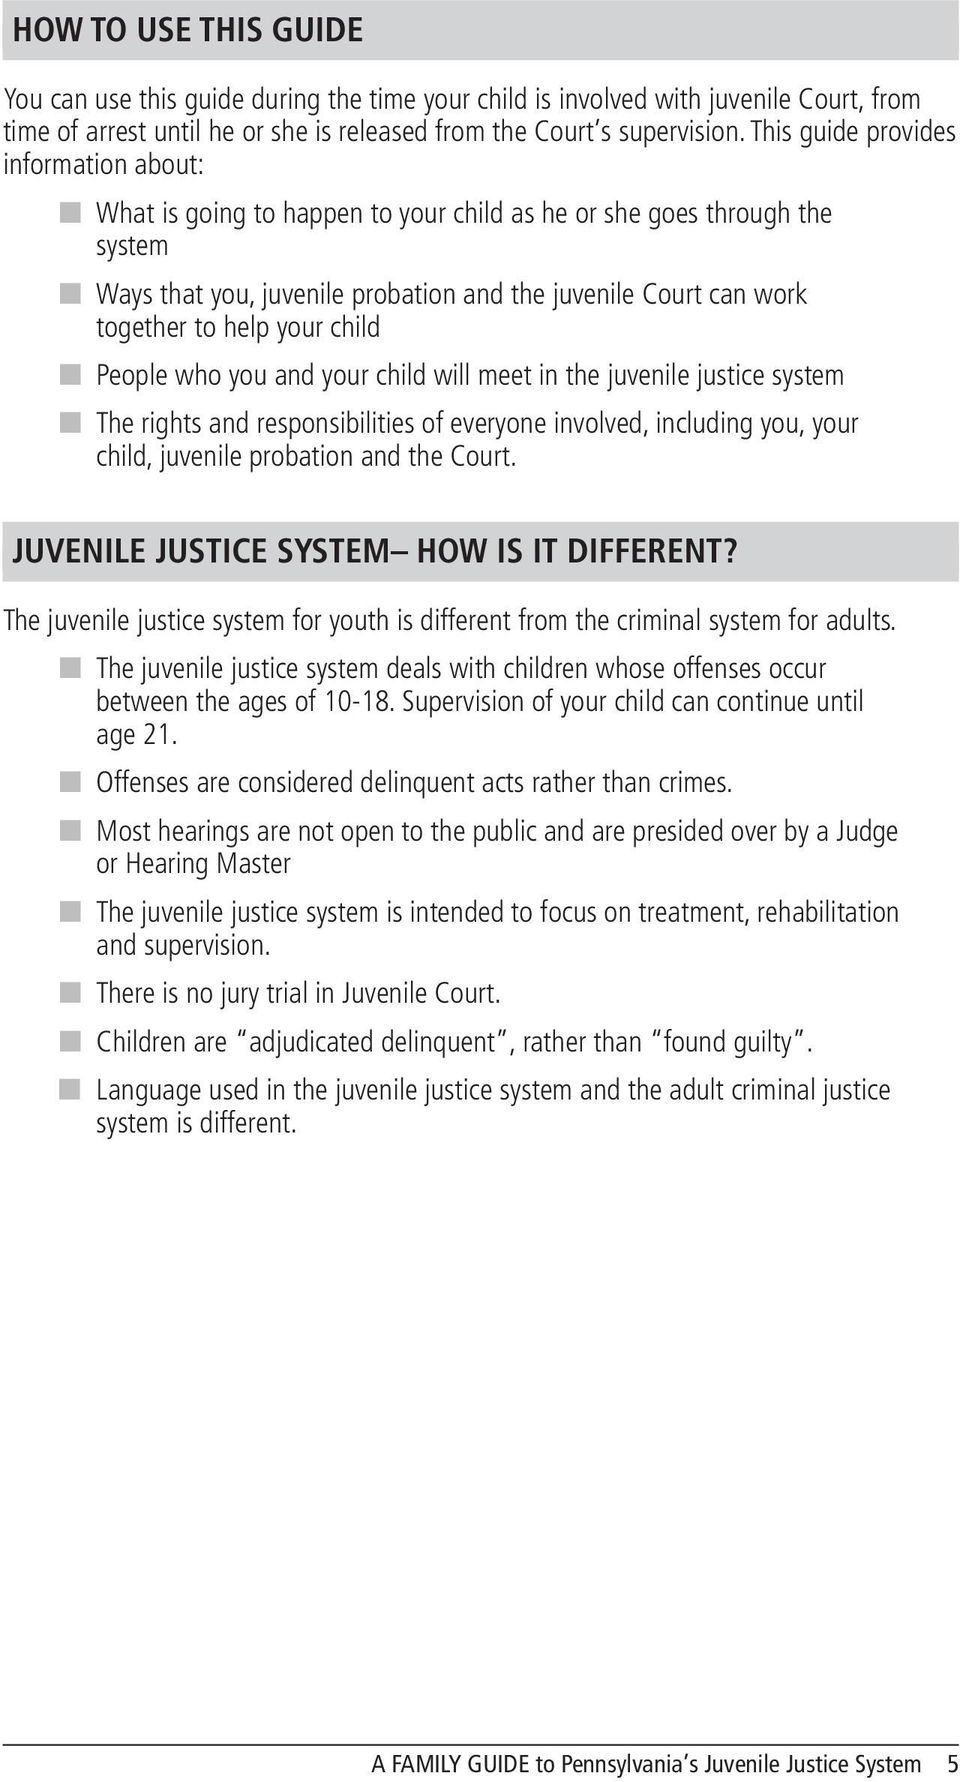 help your child n People who you and your child will meet in the juvenile justice system n The rights and responsibilities of everyone involved, including you, your child, juvenile probation and the